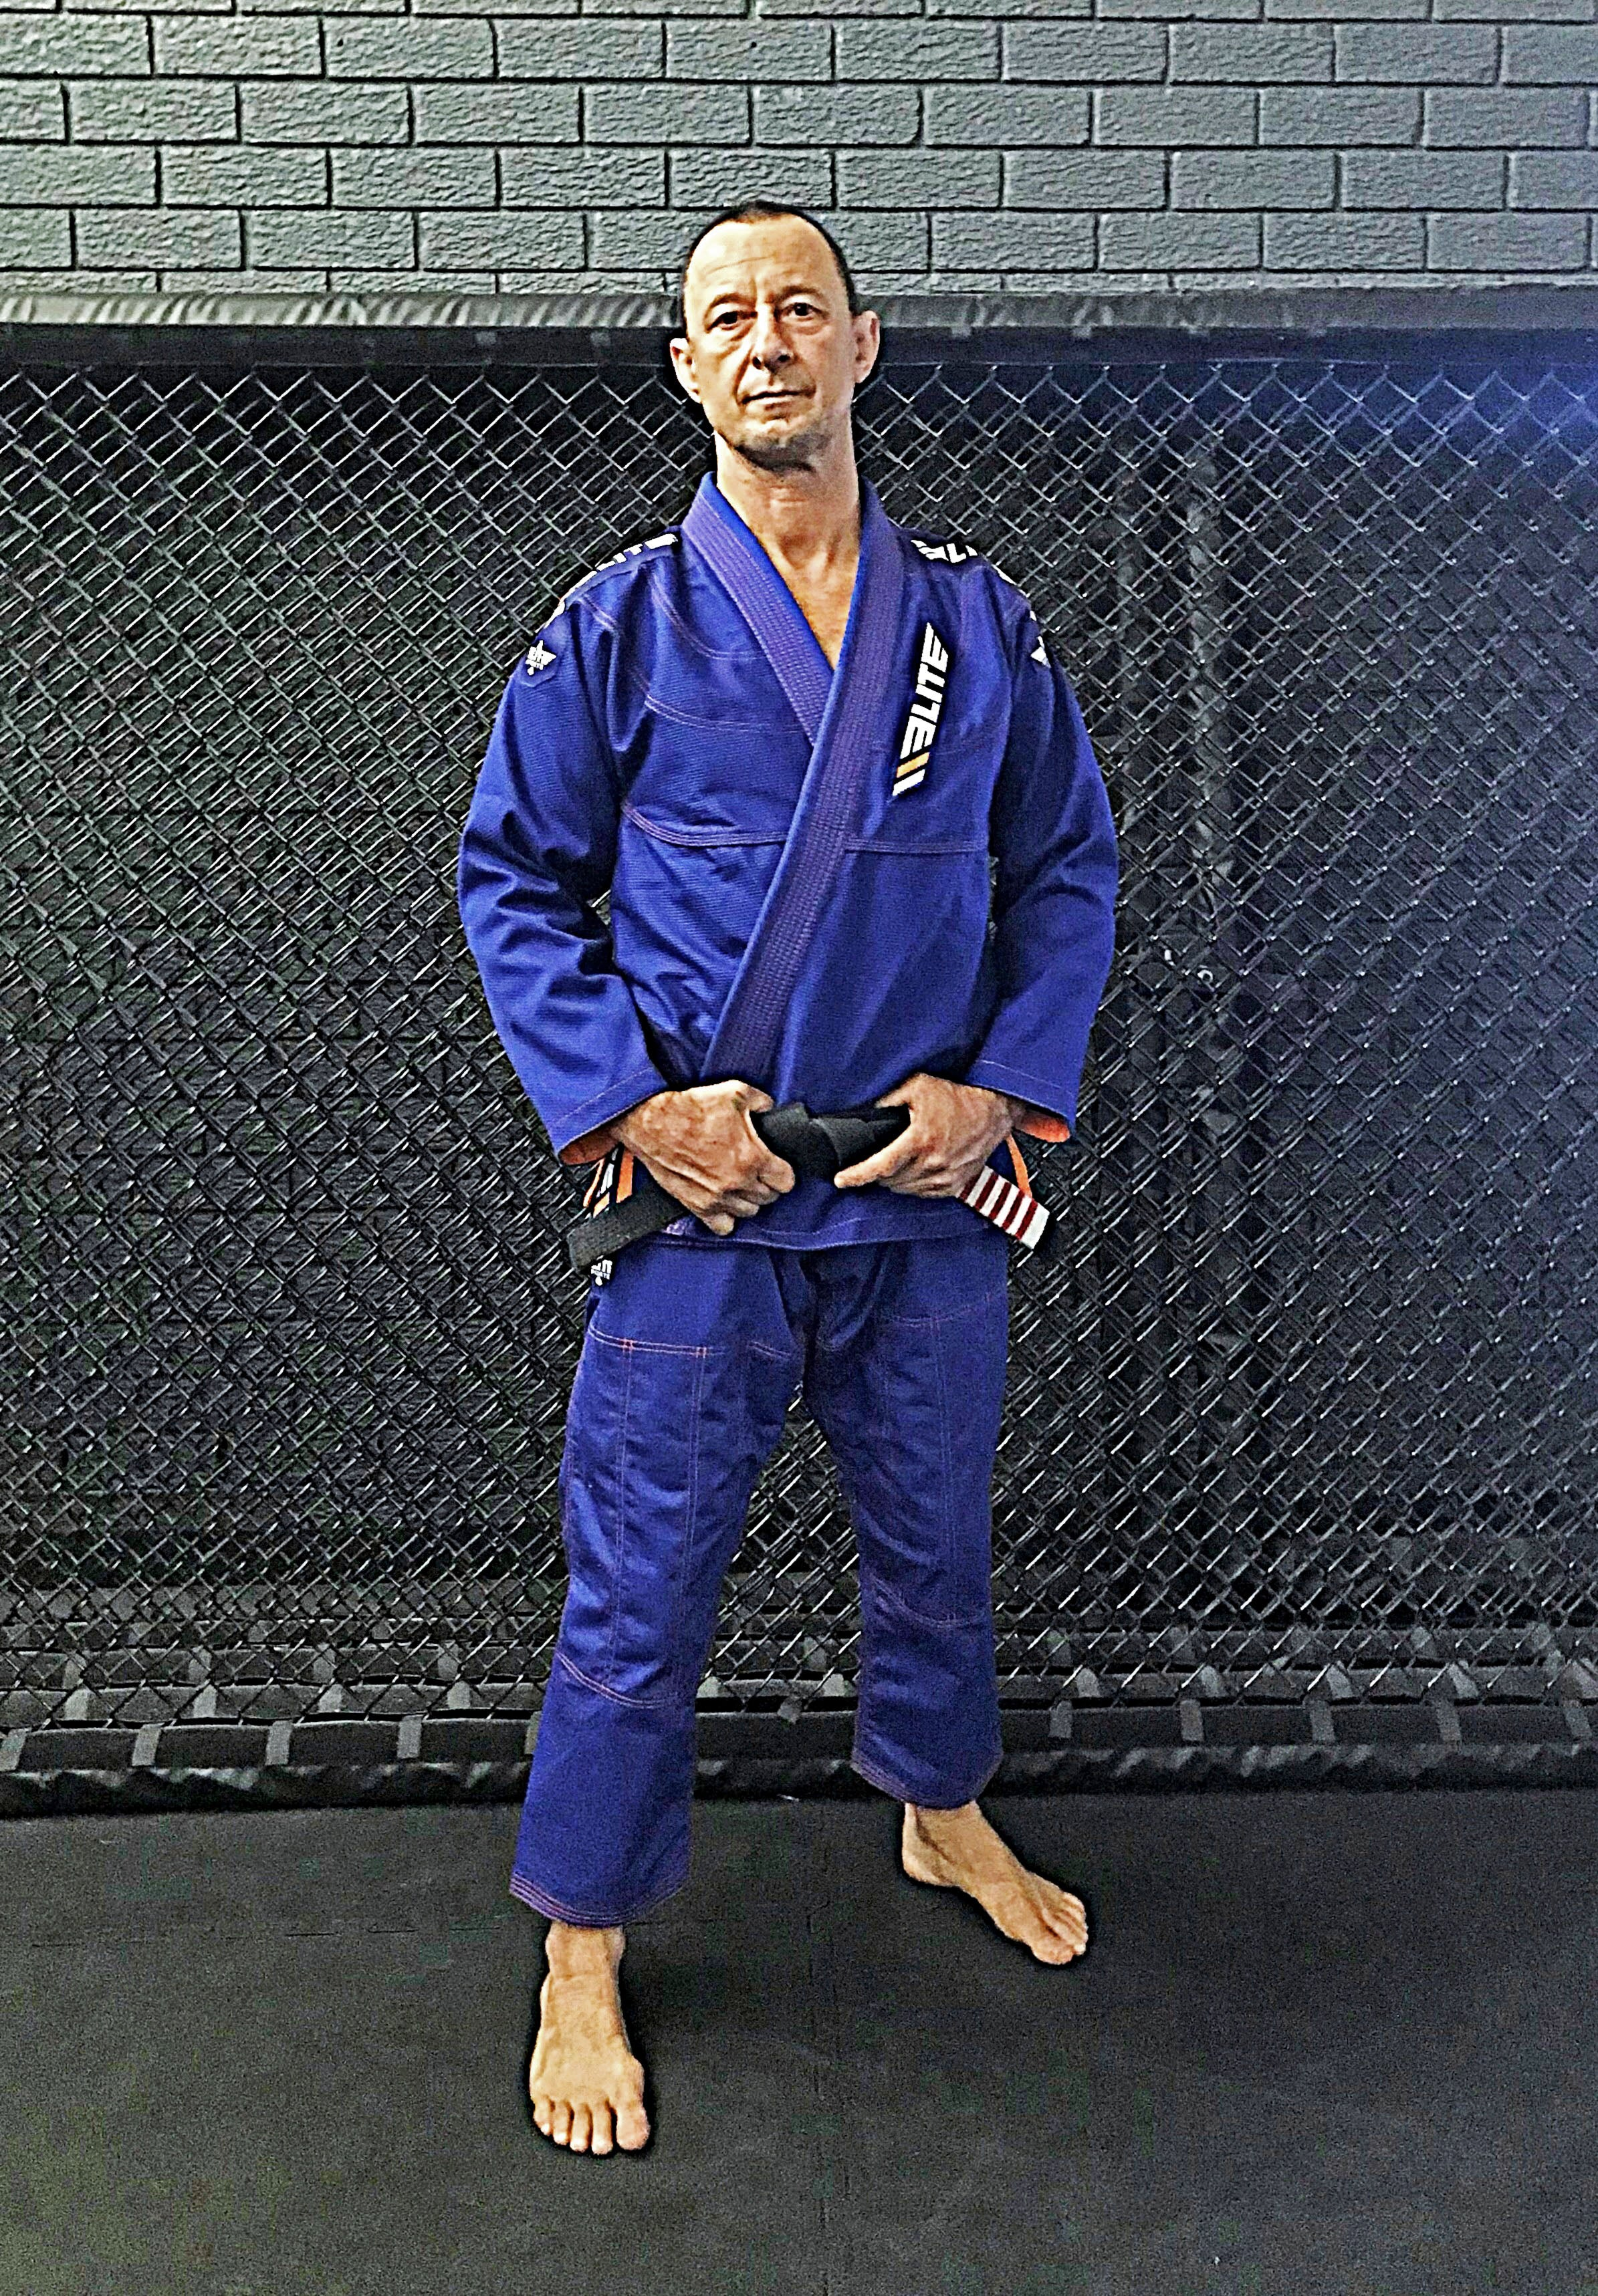 Elite Sports Team Elite Bjj Fighter Anthony Lange Image1